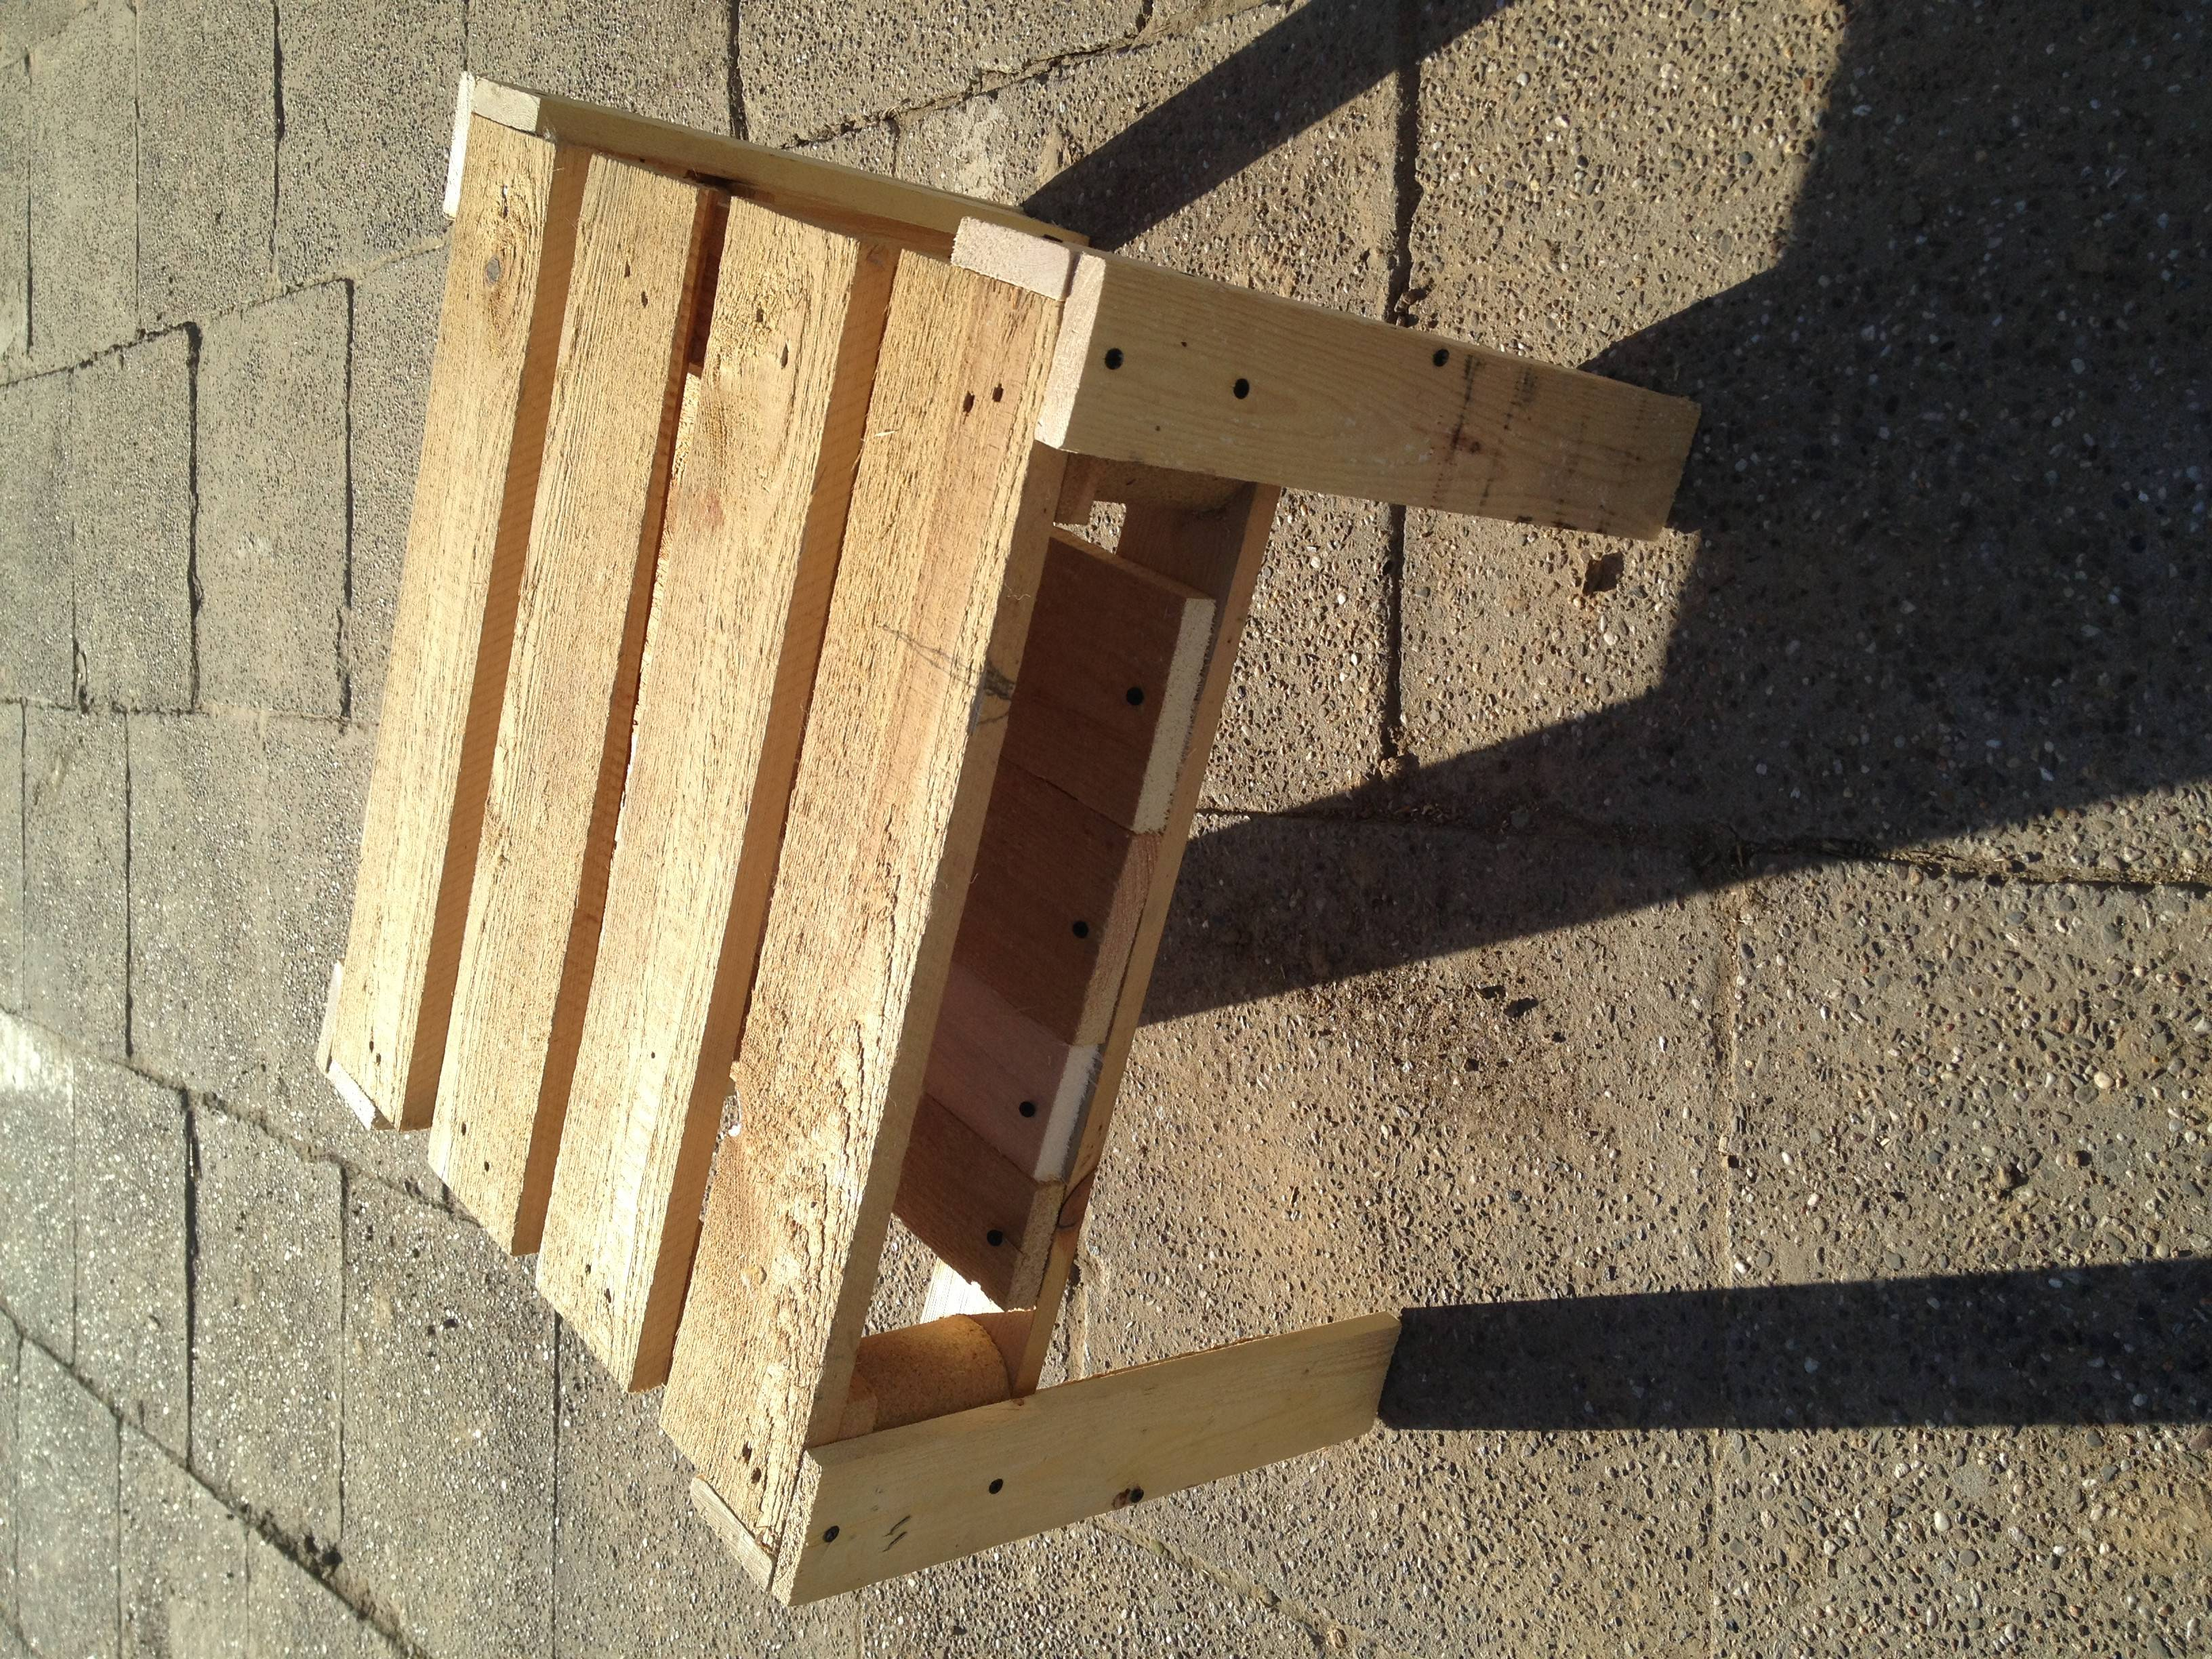 Made Pallet Wood Pallets Into Useful Things Tierra Este ...